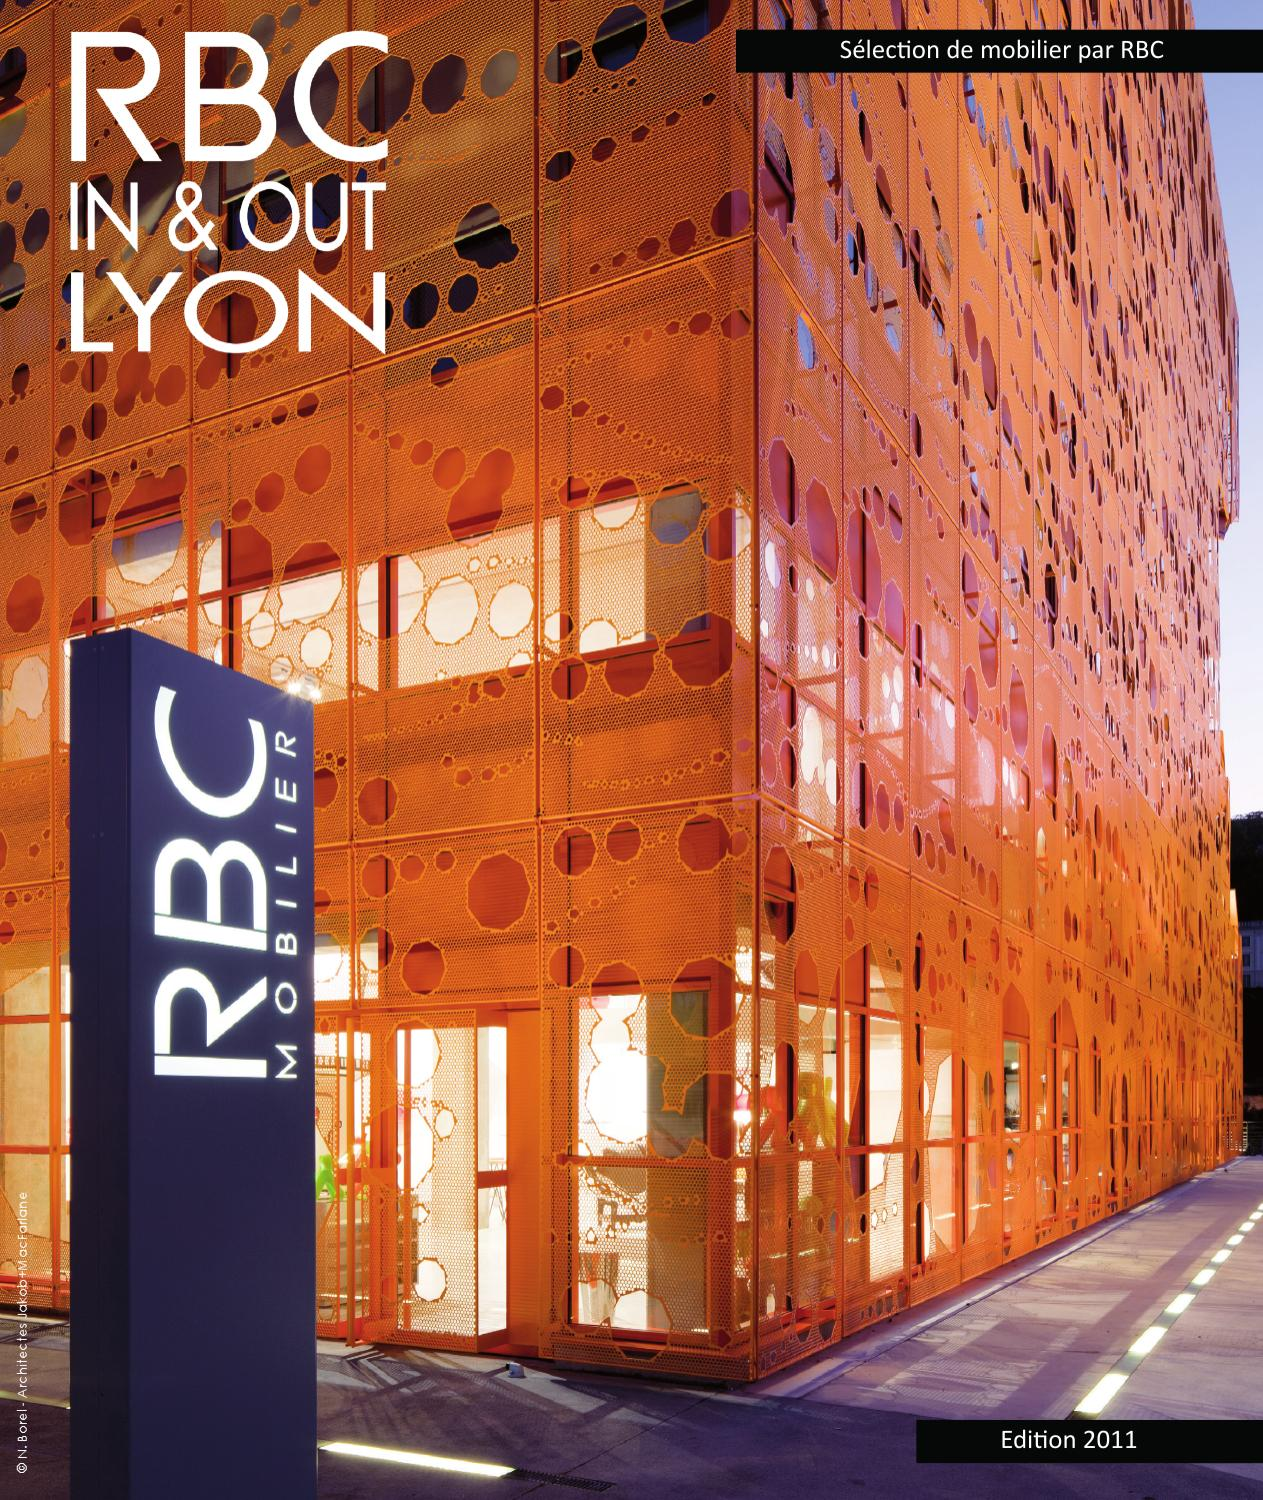 Rbc Mobilier Rbc In Andout Lyon 2011 By Rbc Mobilier Issuu